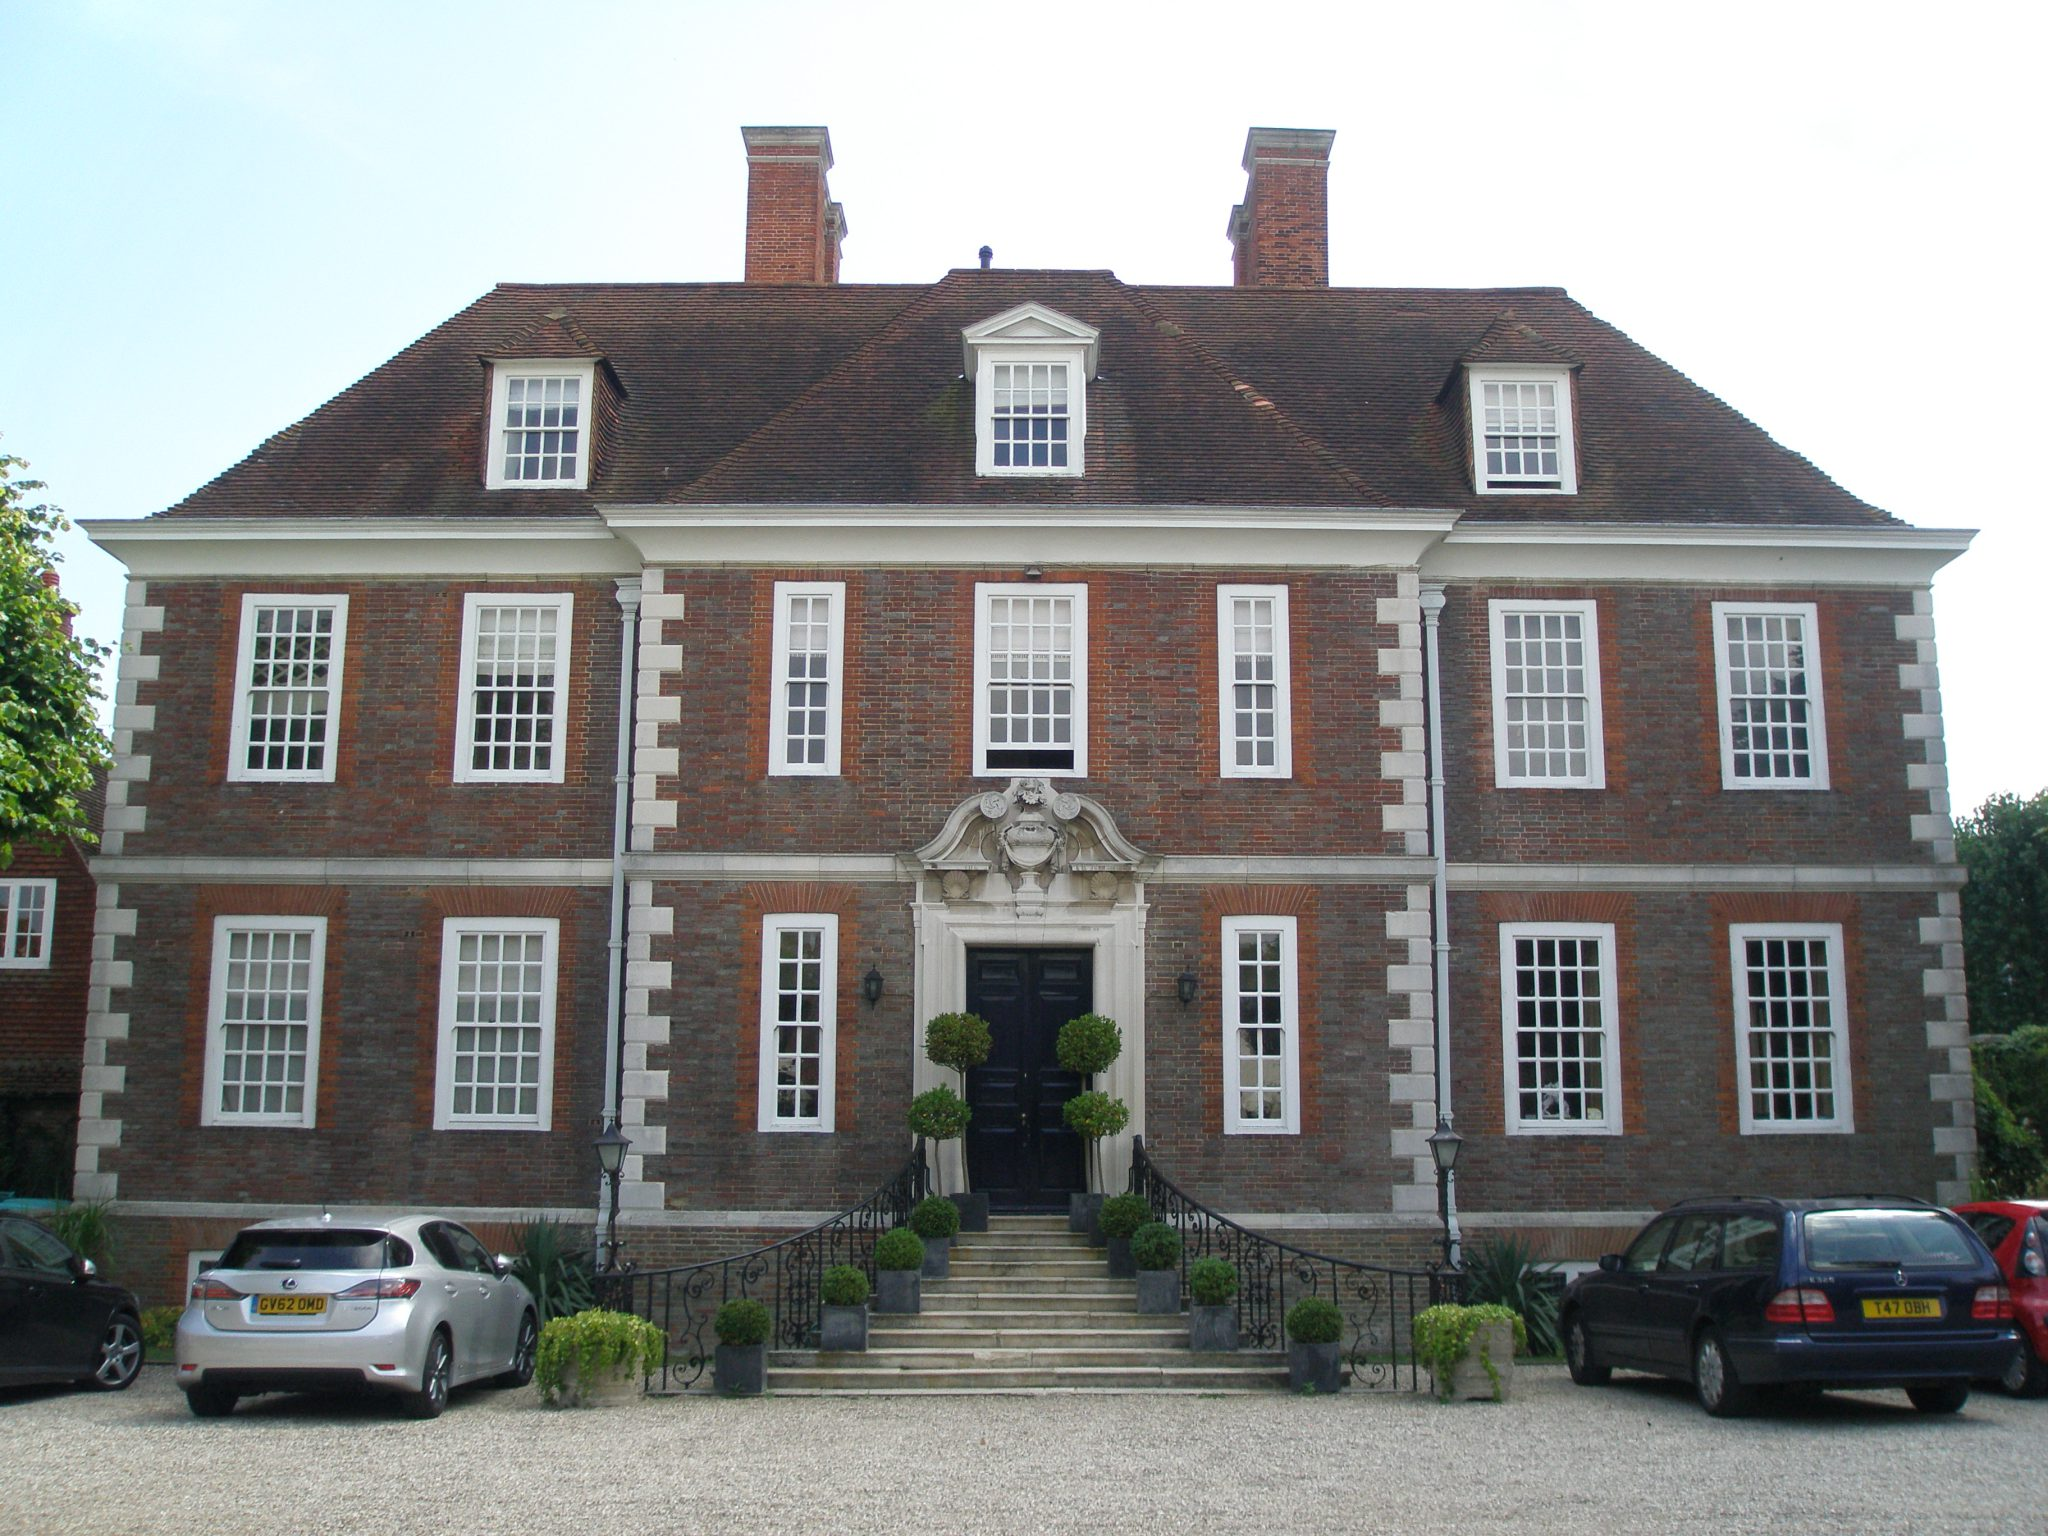 The Salutation, in Sandwich, Kent. House and Gardens designed in 1911 by architect Edwin Lutyens. Photo taken on August 8, 2013.